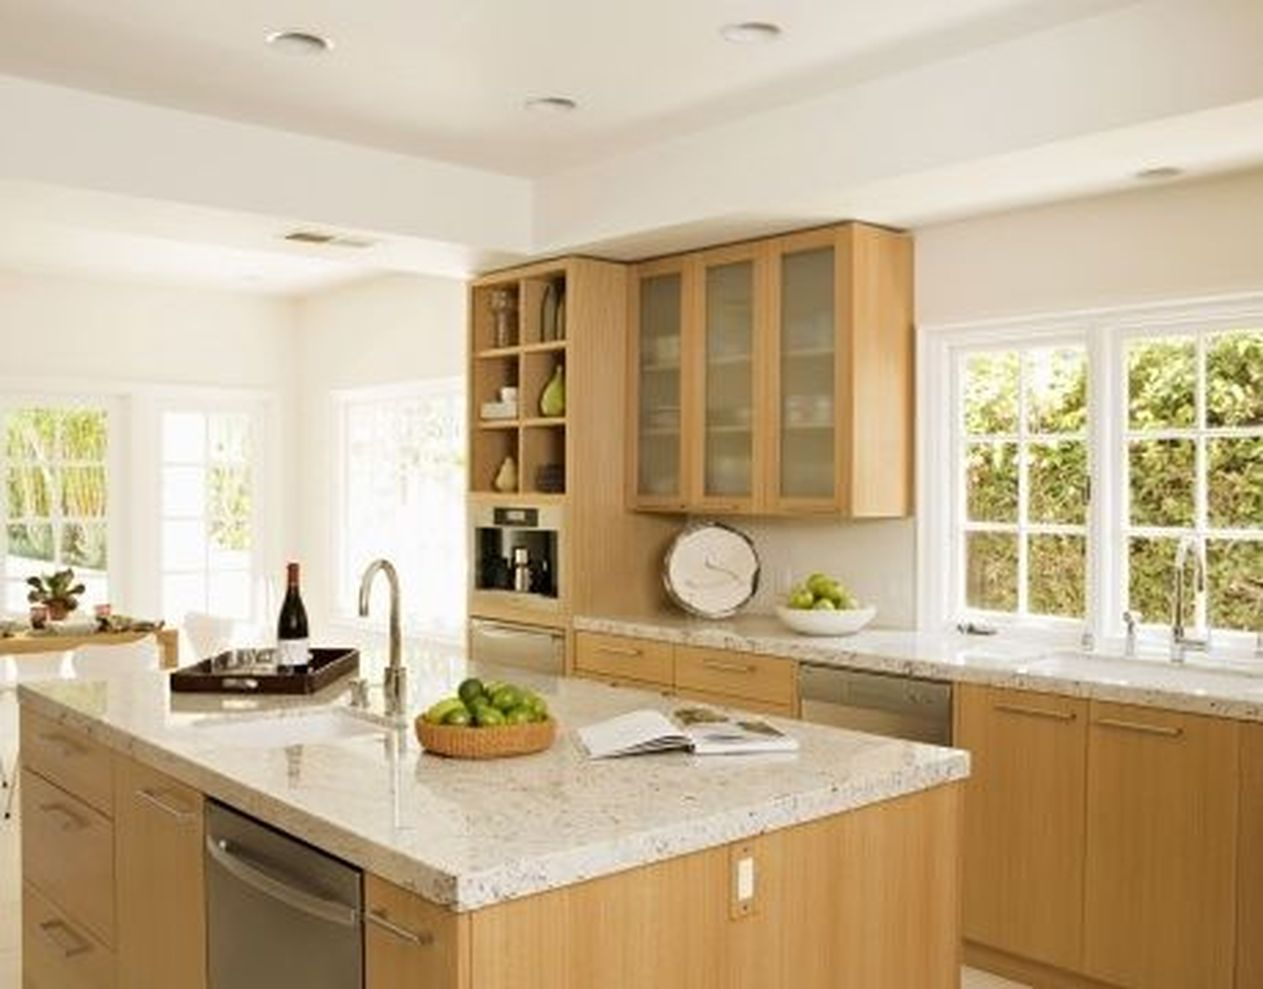 90 Best Ideas Quartz Kitchen Countertops Qassamcount Com Maple Kitchen Cabinets Kitchen Remodel Countertops Kitchen Renovation